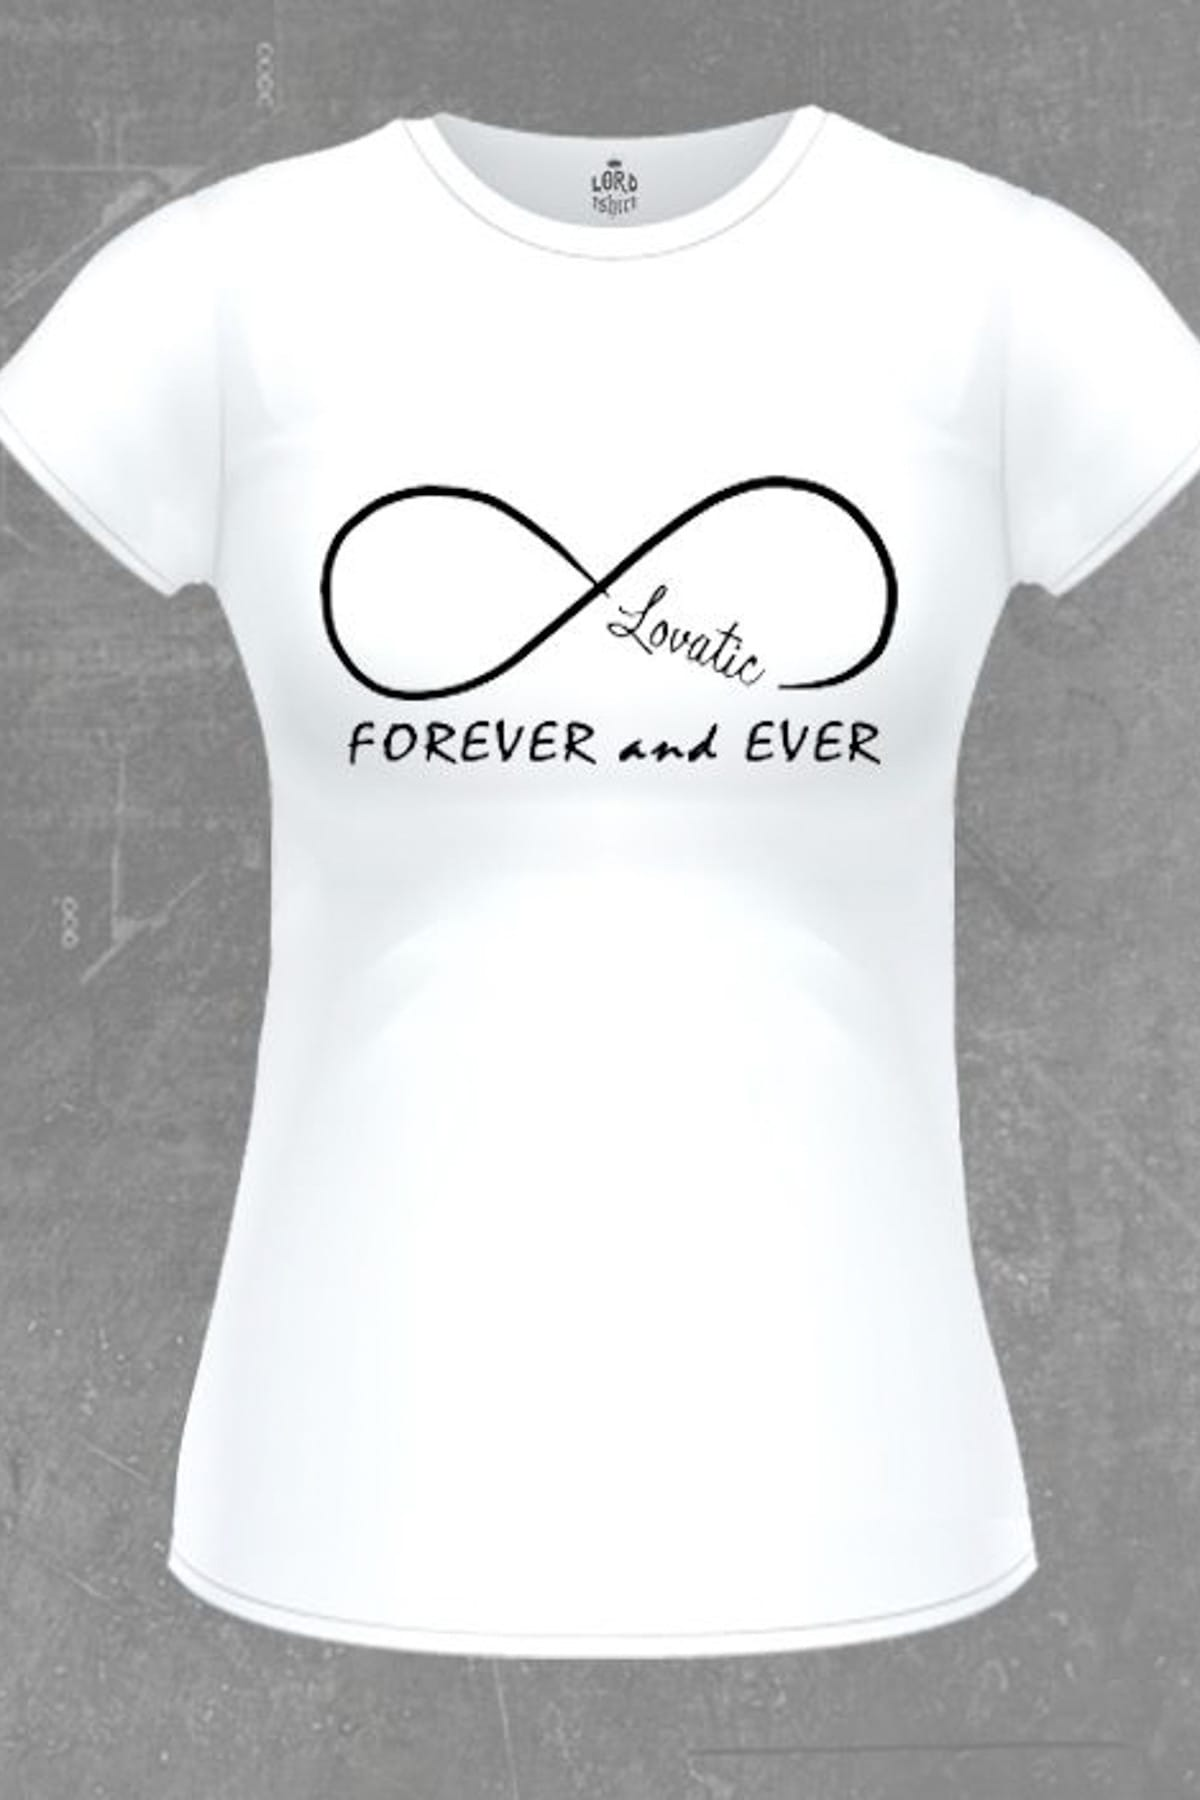 Lord T-shirt Demi Lovato – Forever And Ever Beyaz Bb-98 – 49.9 TL